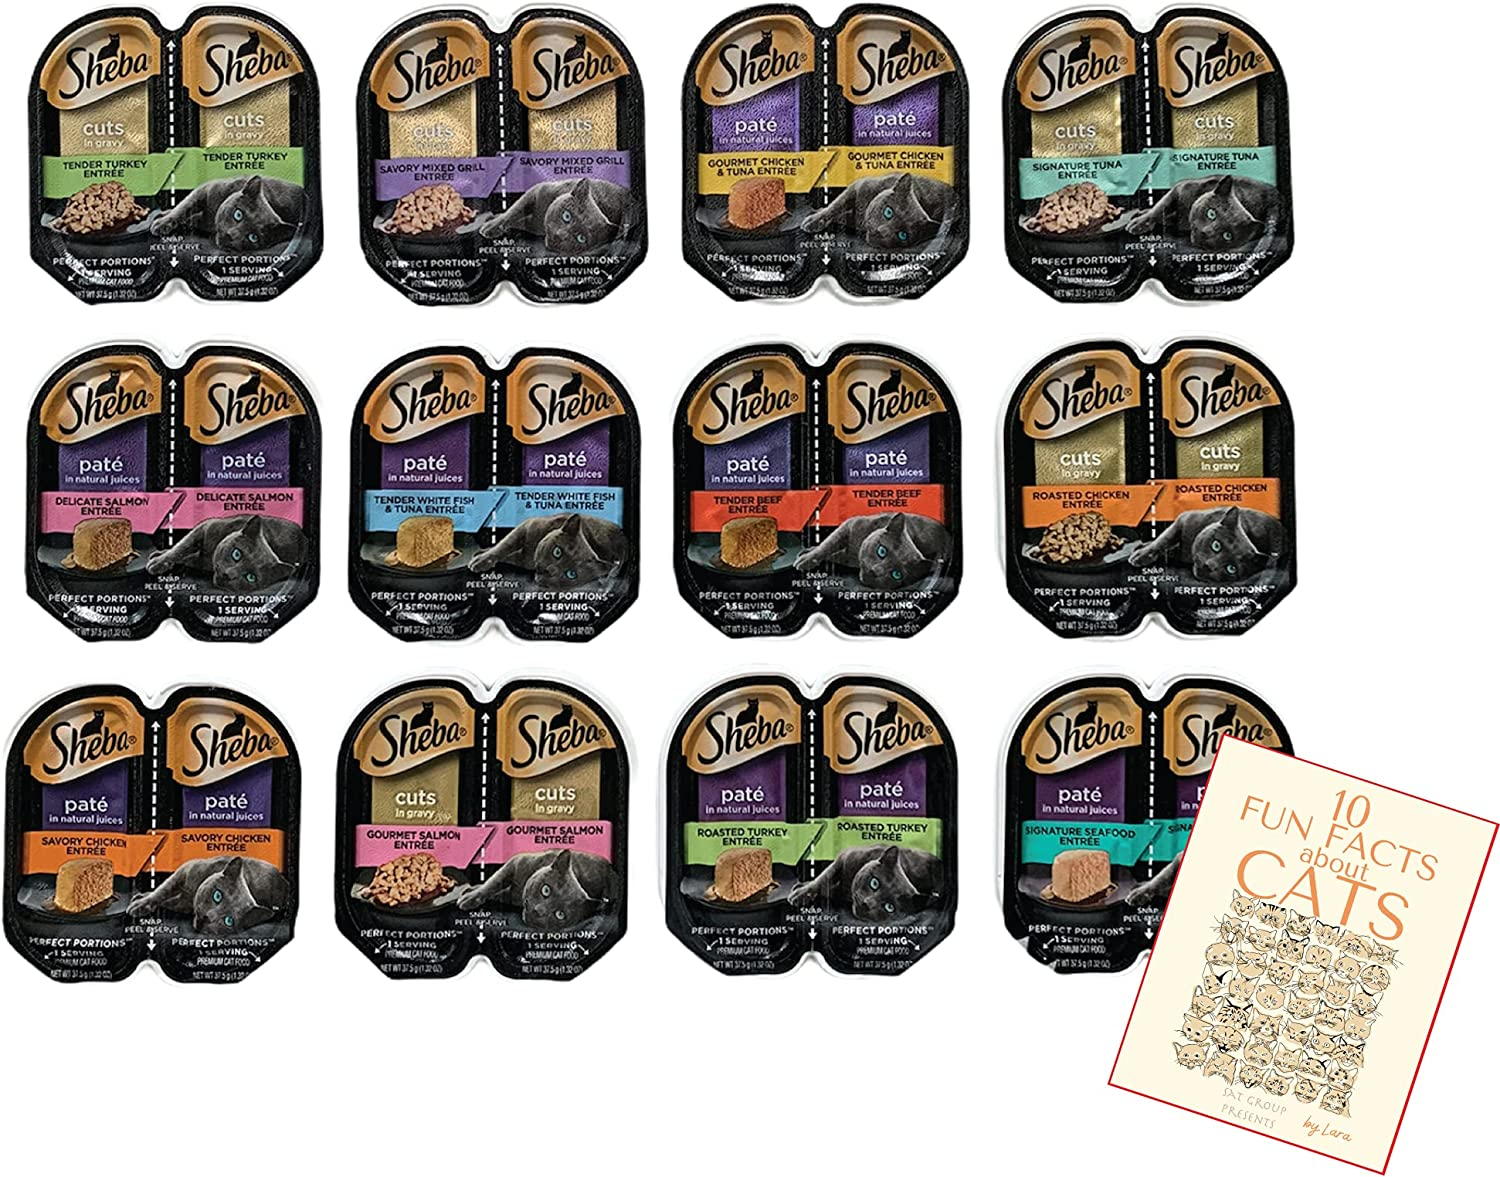 Sheba Perfect Portions Pate Wet Cat Food Cuts in Gravy Variety Pack All Flavors, Beef, Chicken, Salmon, Turkey, Tuna, White Fish, Multipack (24 Servings) with Lara's Booklet Bundle